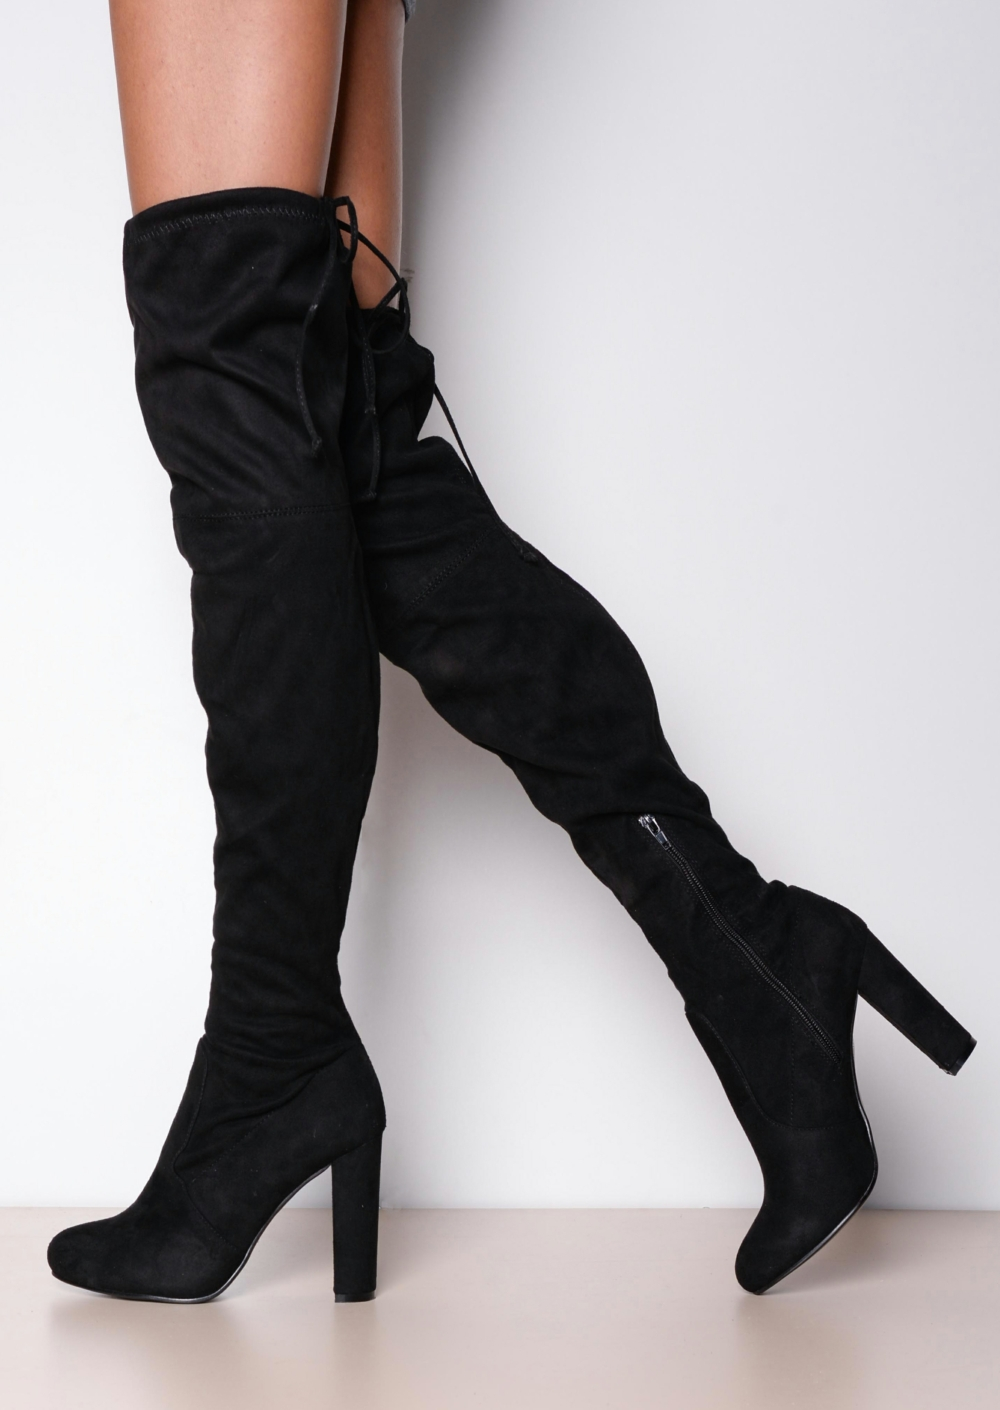 Thigh High Stiletto Boots 41PFigld